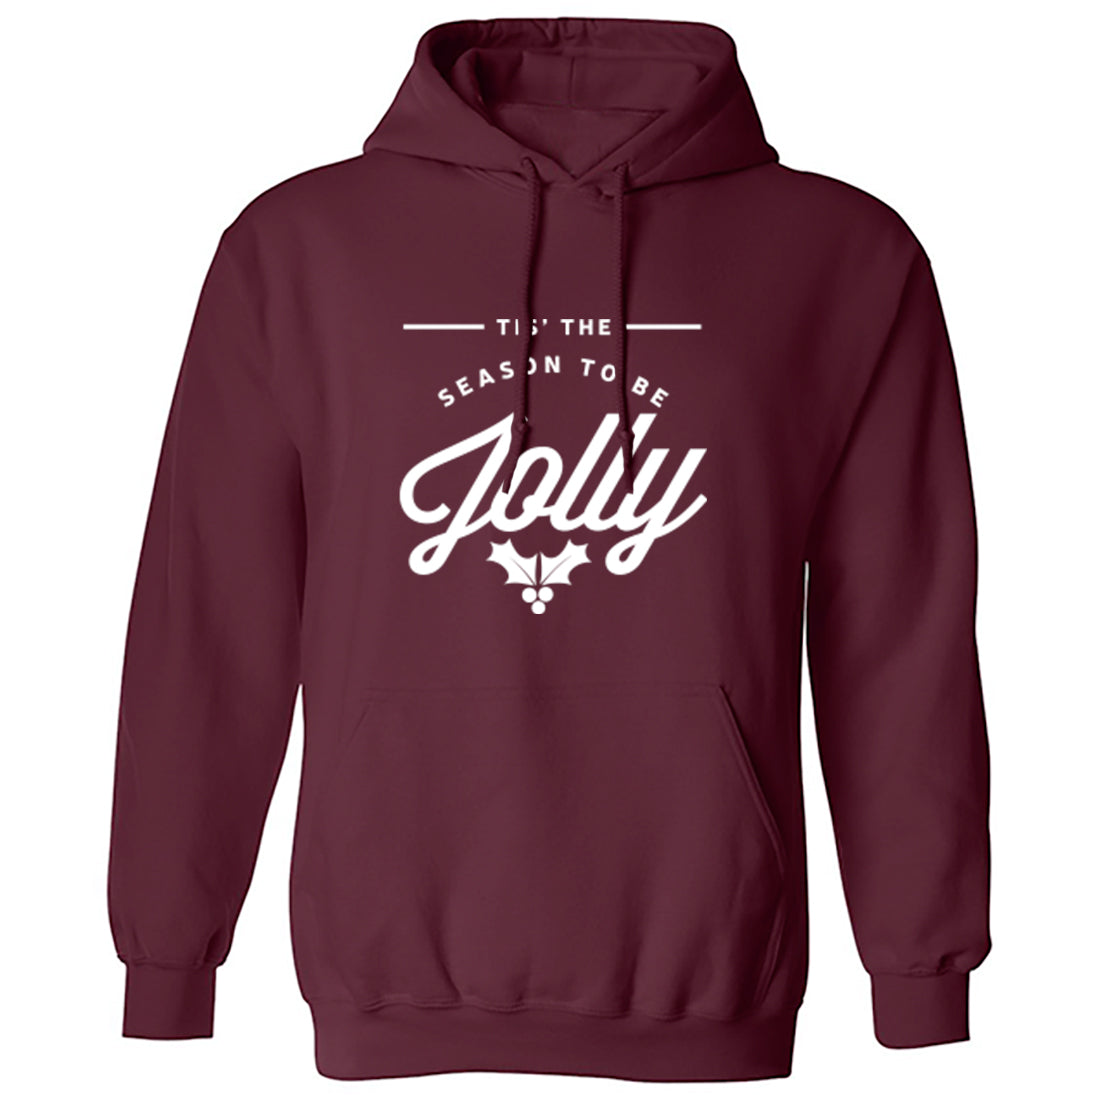 Tis' The Season To Be Jolly Unisex Hoodie K1250 - Illustrated Identity Ltd.